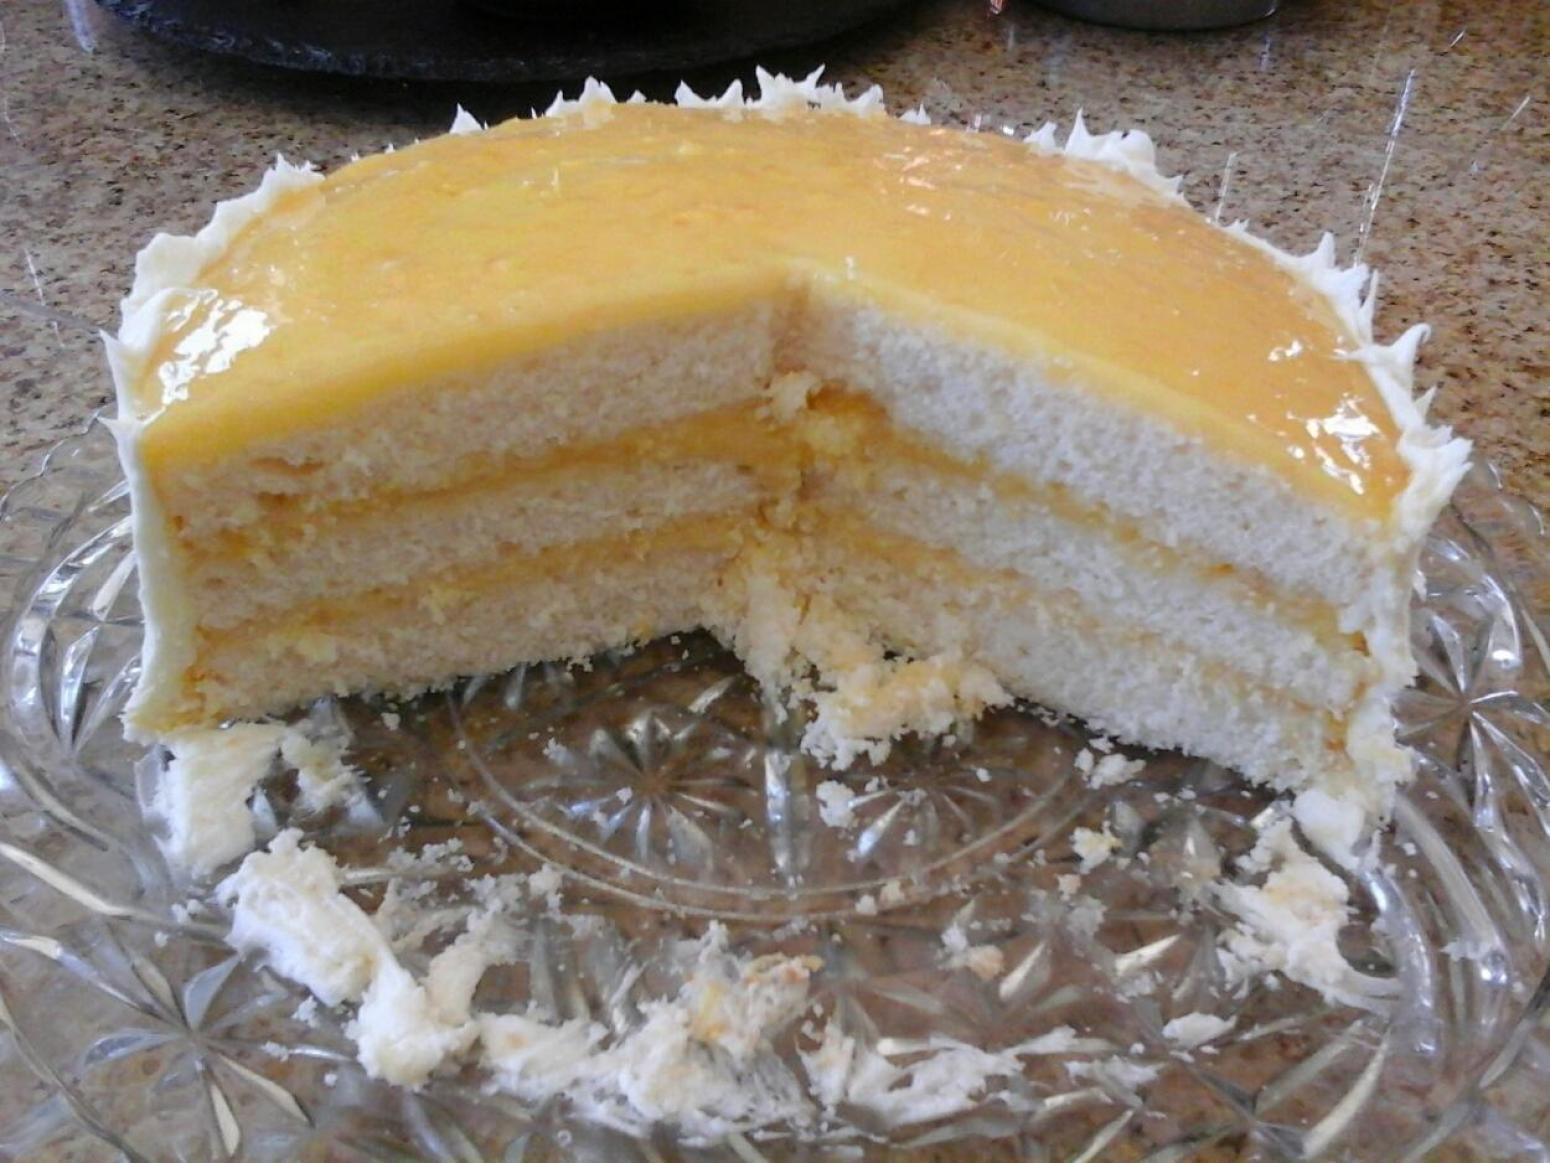 Layered Cake Recipes With Fillings: Lemon Curd Filling For A Three Layer Cake Recipe